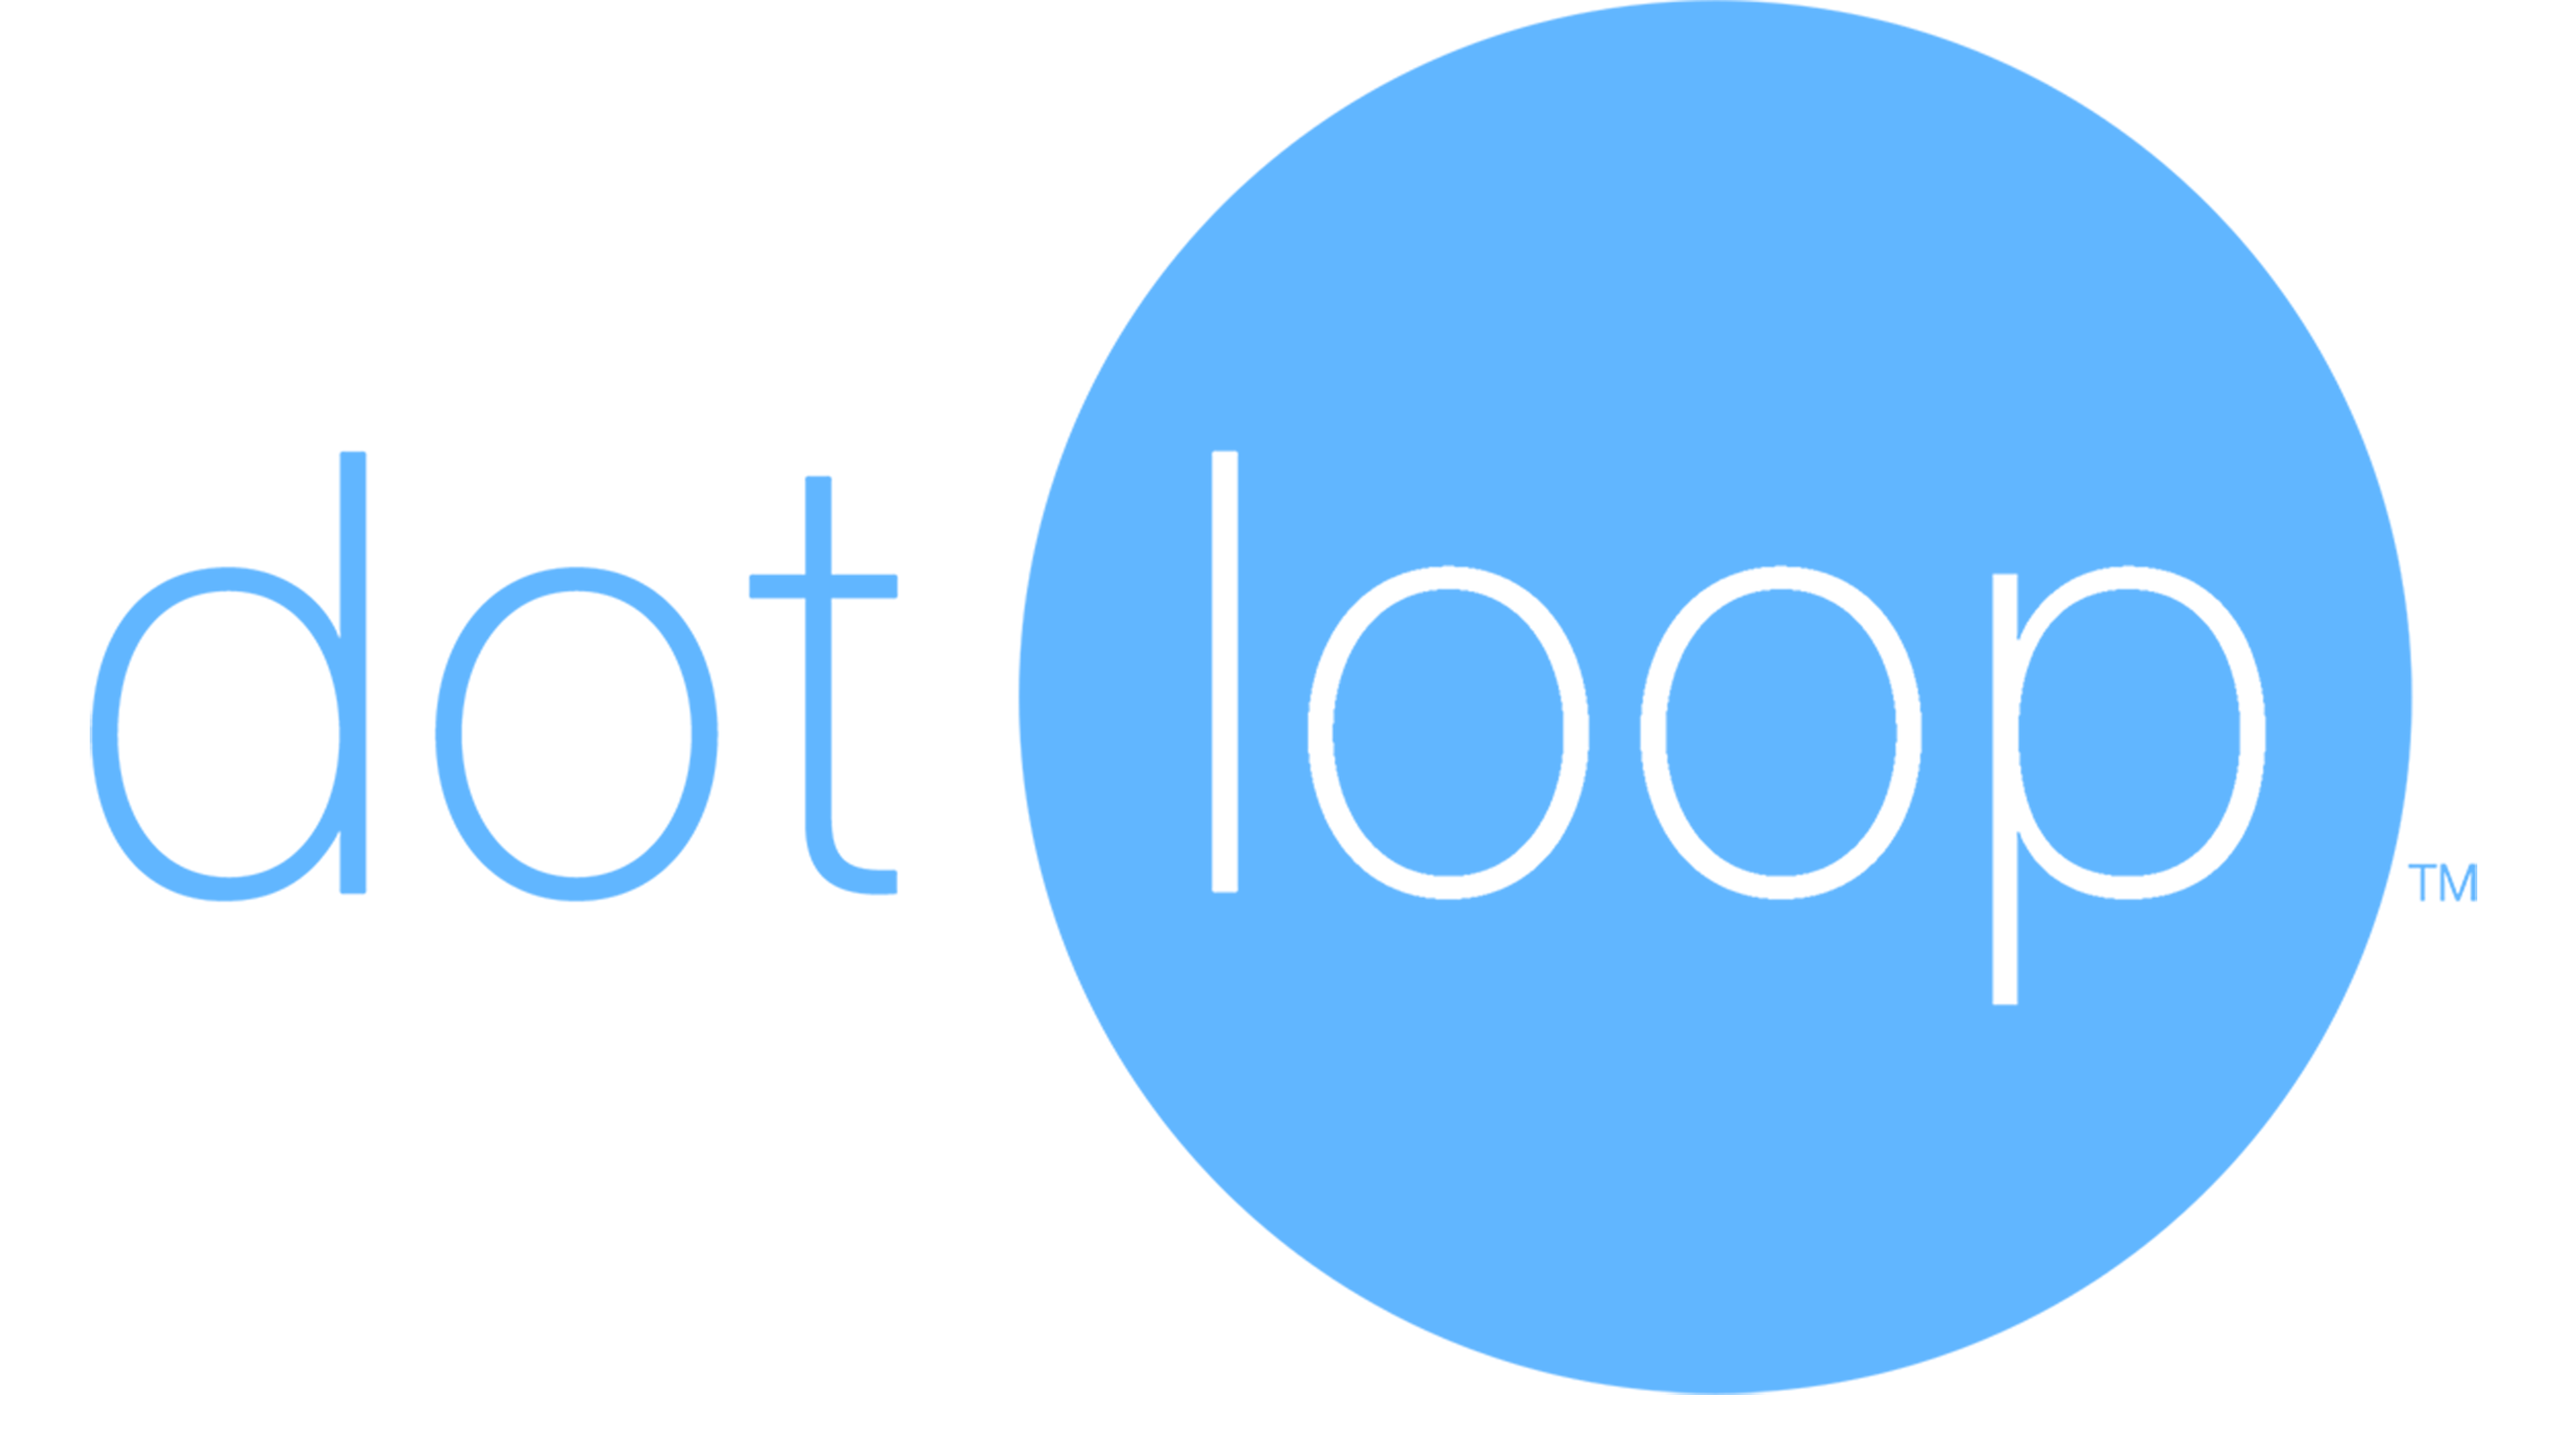 dotloop logo - blue HR 300